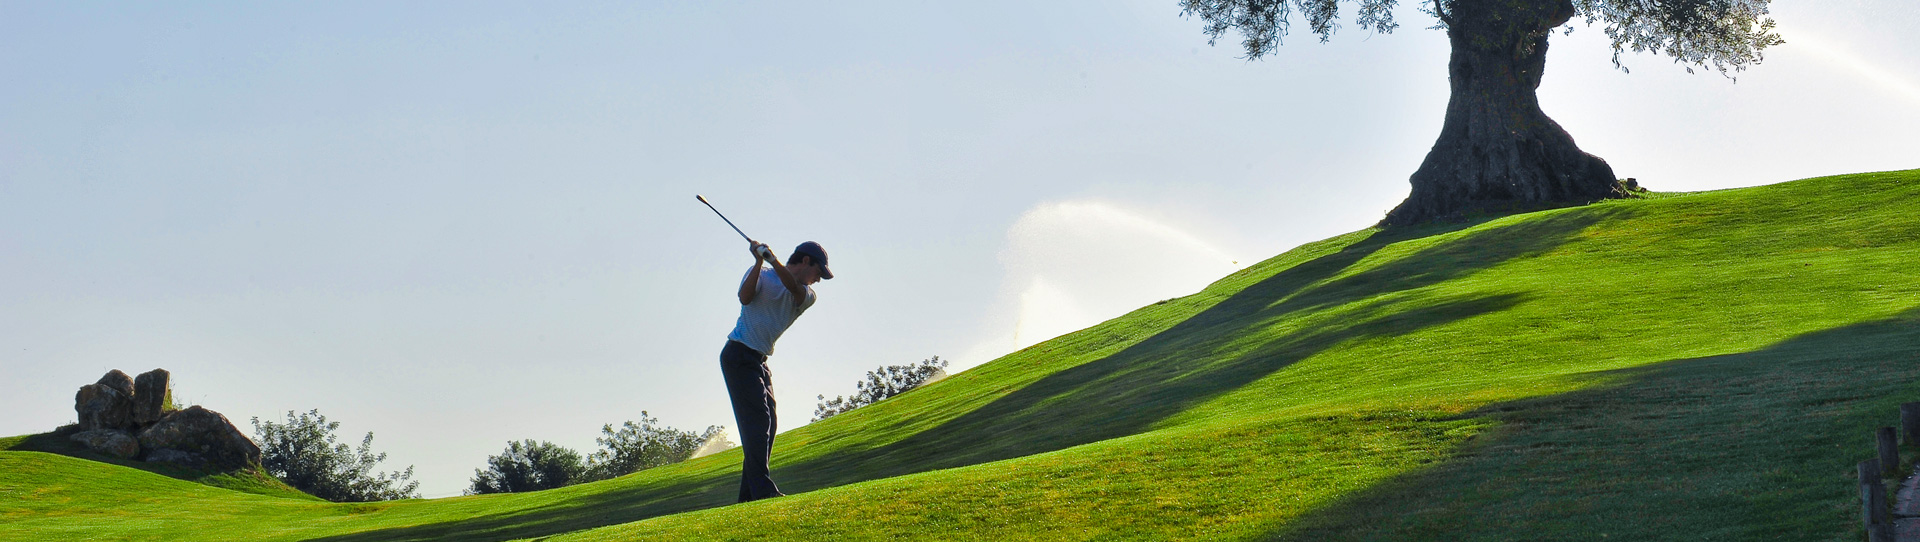 Benamor Golf Course - Photo 2